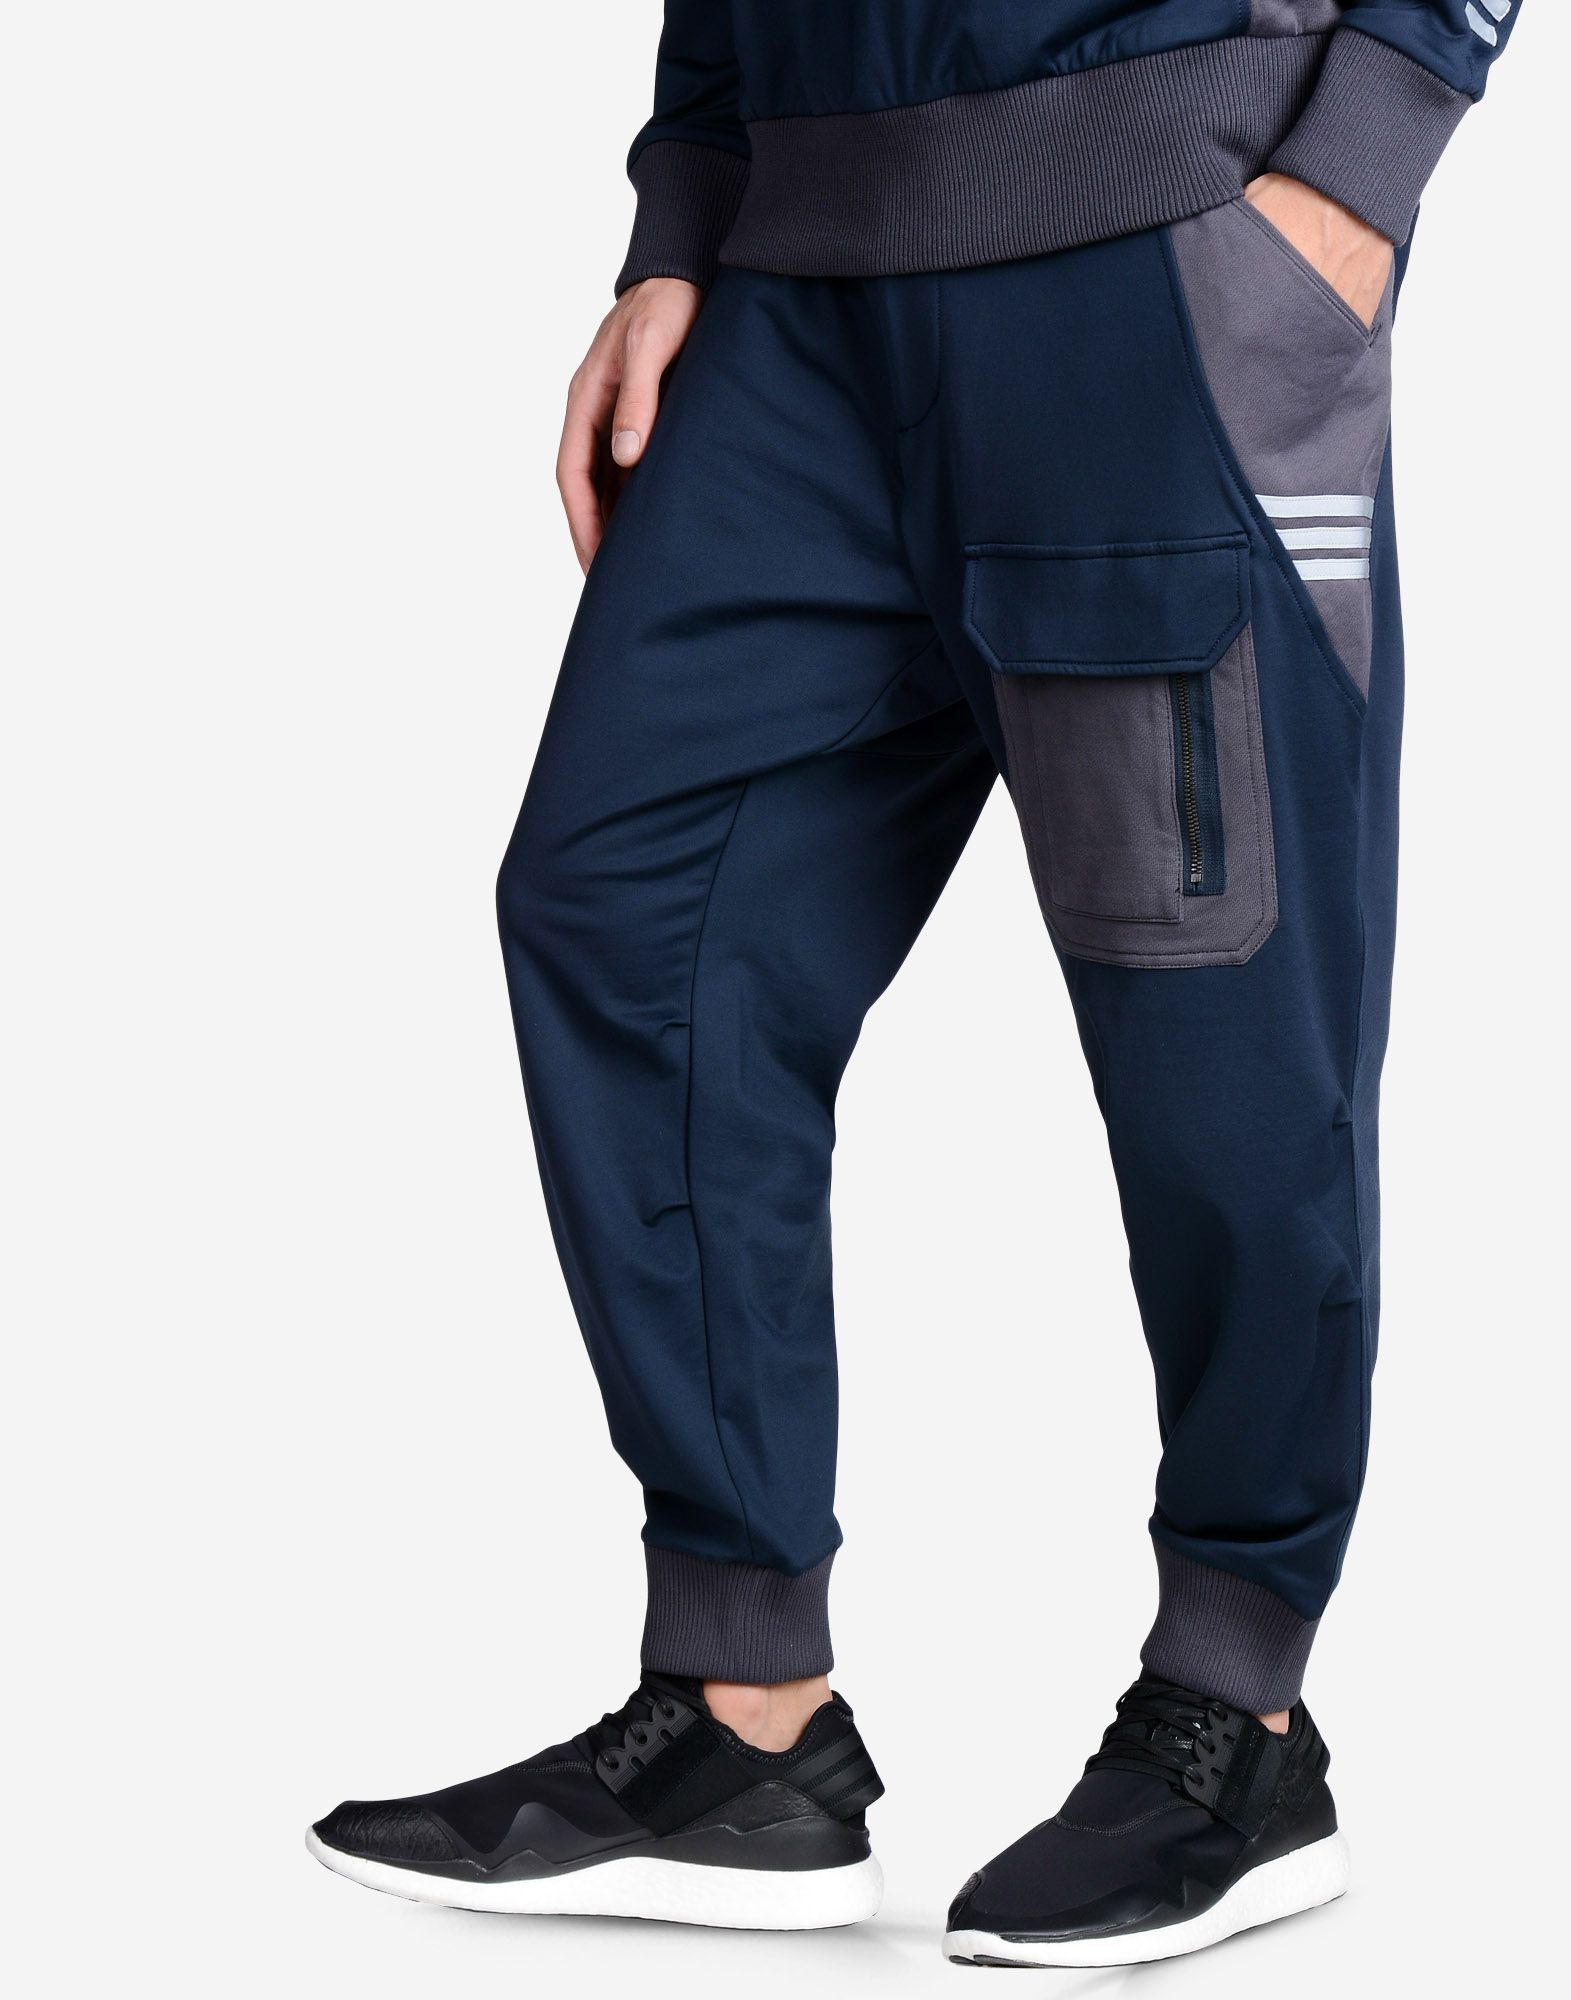 f7d7e43b Y-3 LUX DRILL TRACK PANT PANTS man Y-3 adidas | Men | Track pants ...